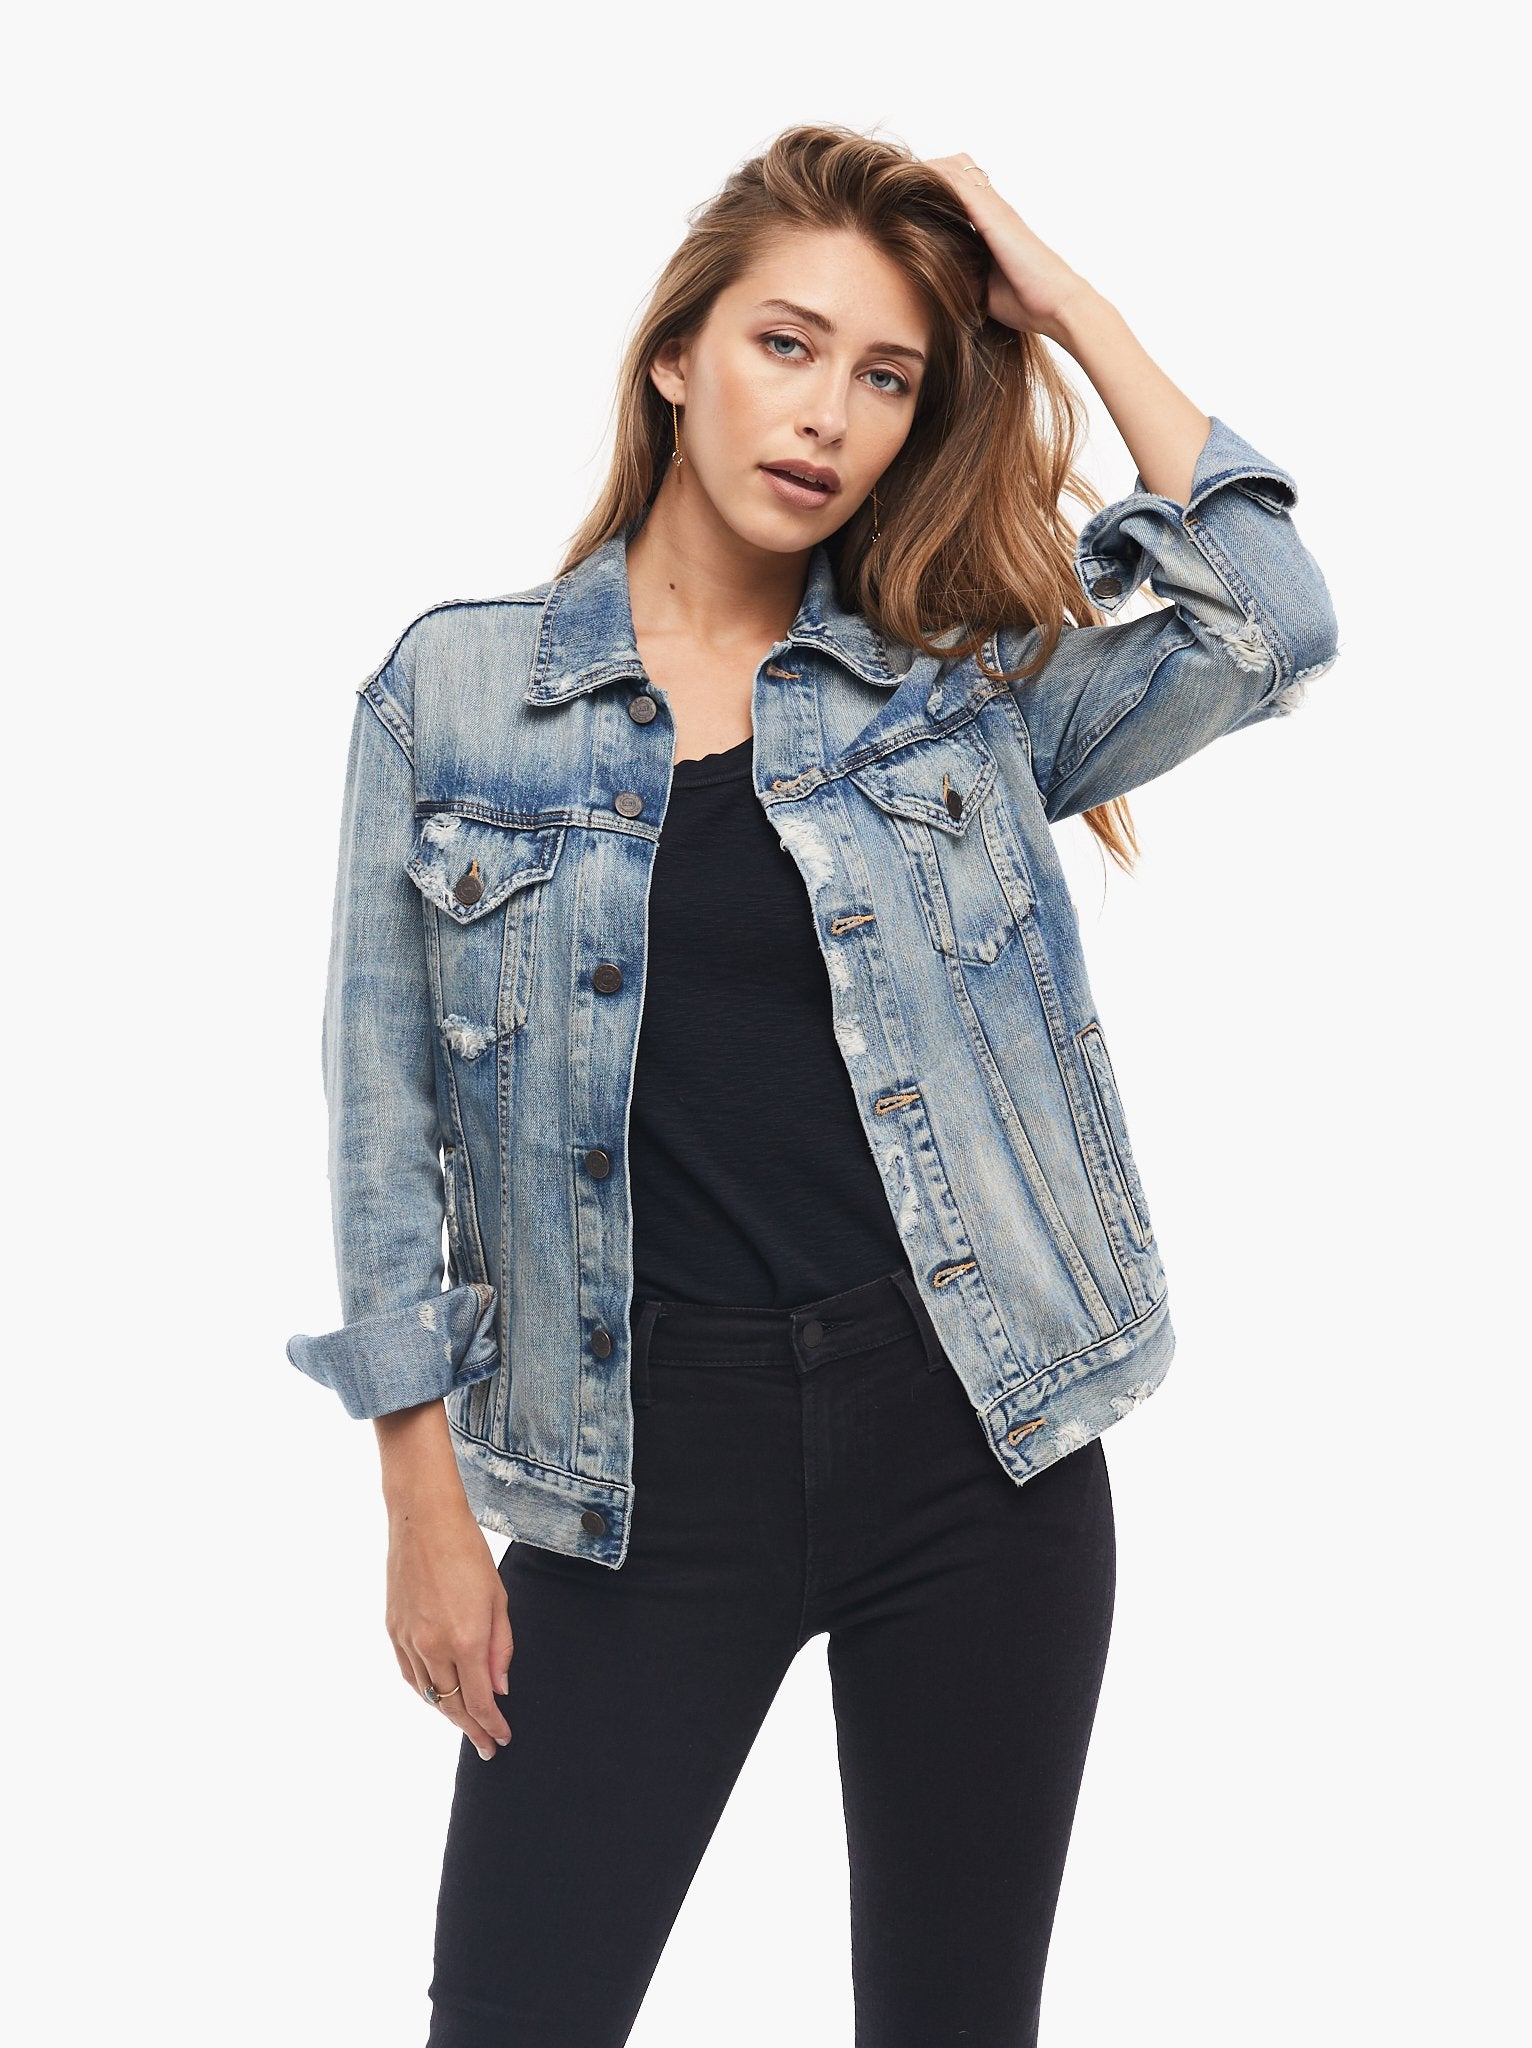 M Blogger Fave Blue Distressed Denim Ripped//Frayed Fitted Fashion Jacket S L